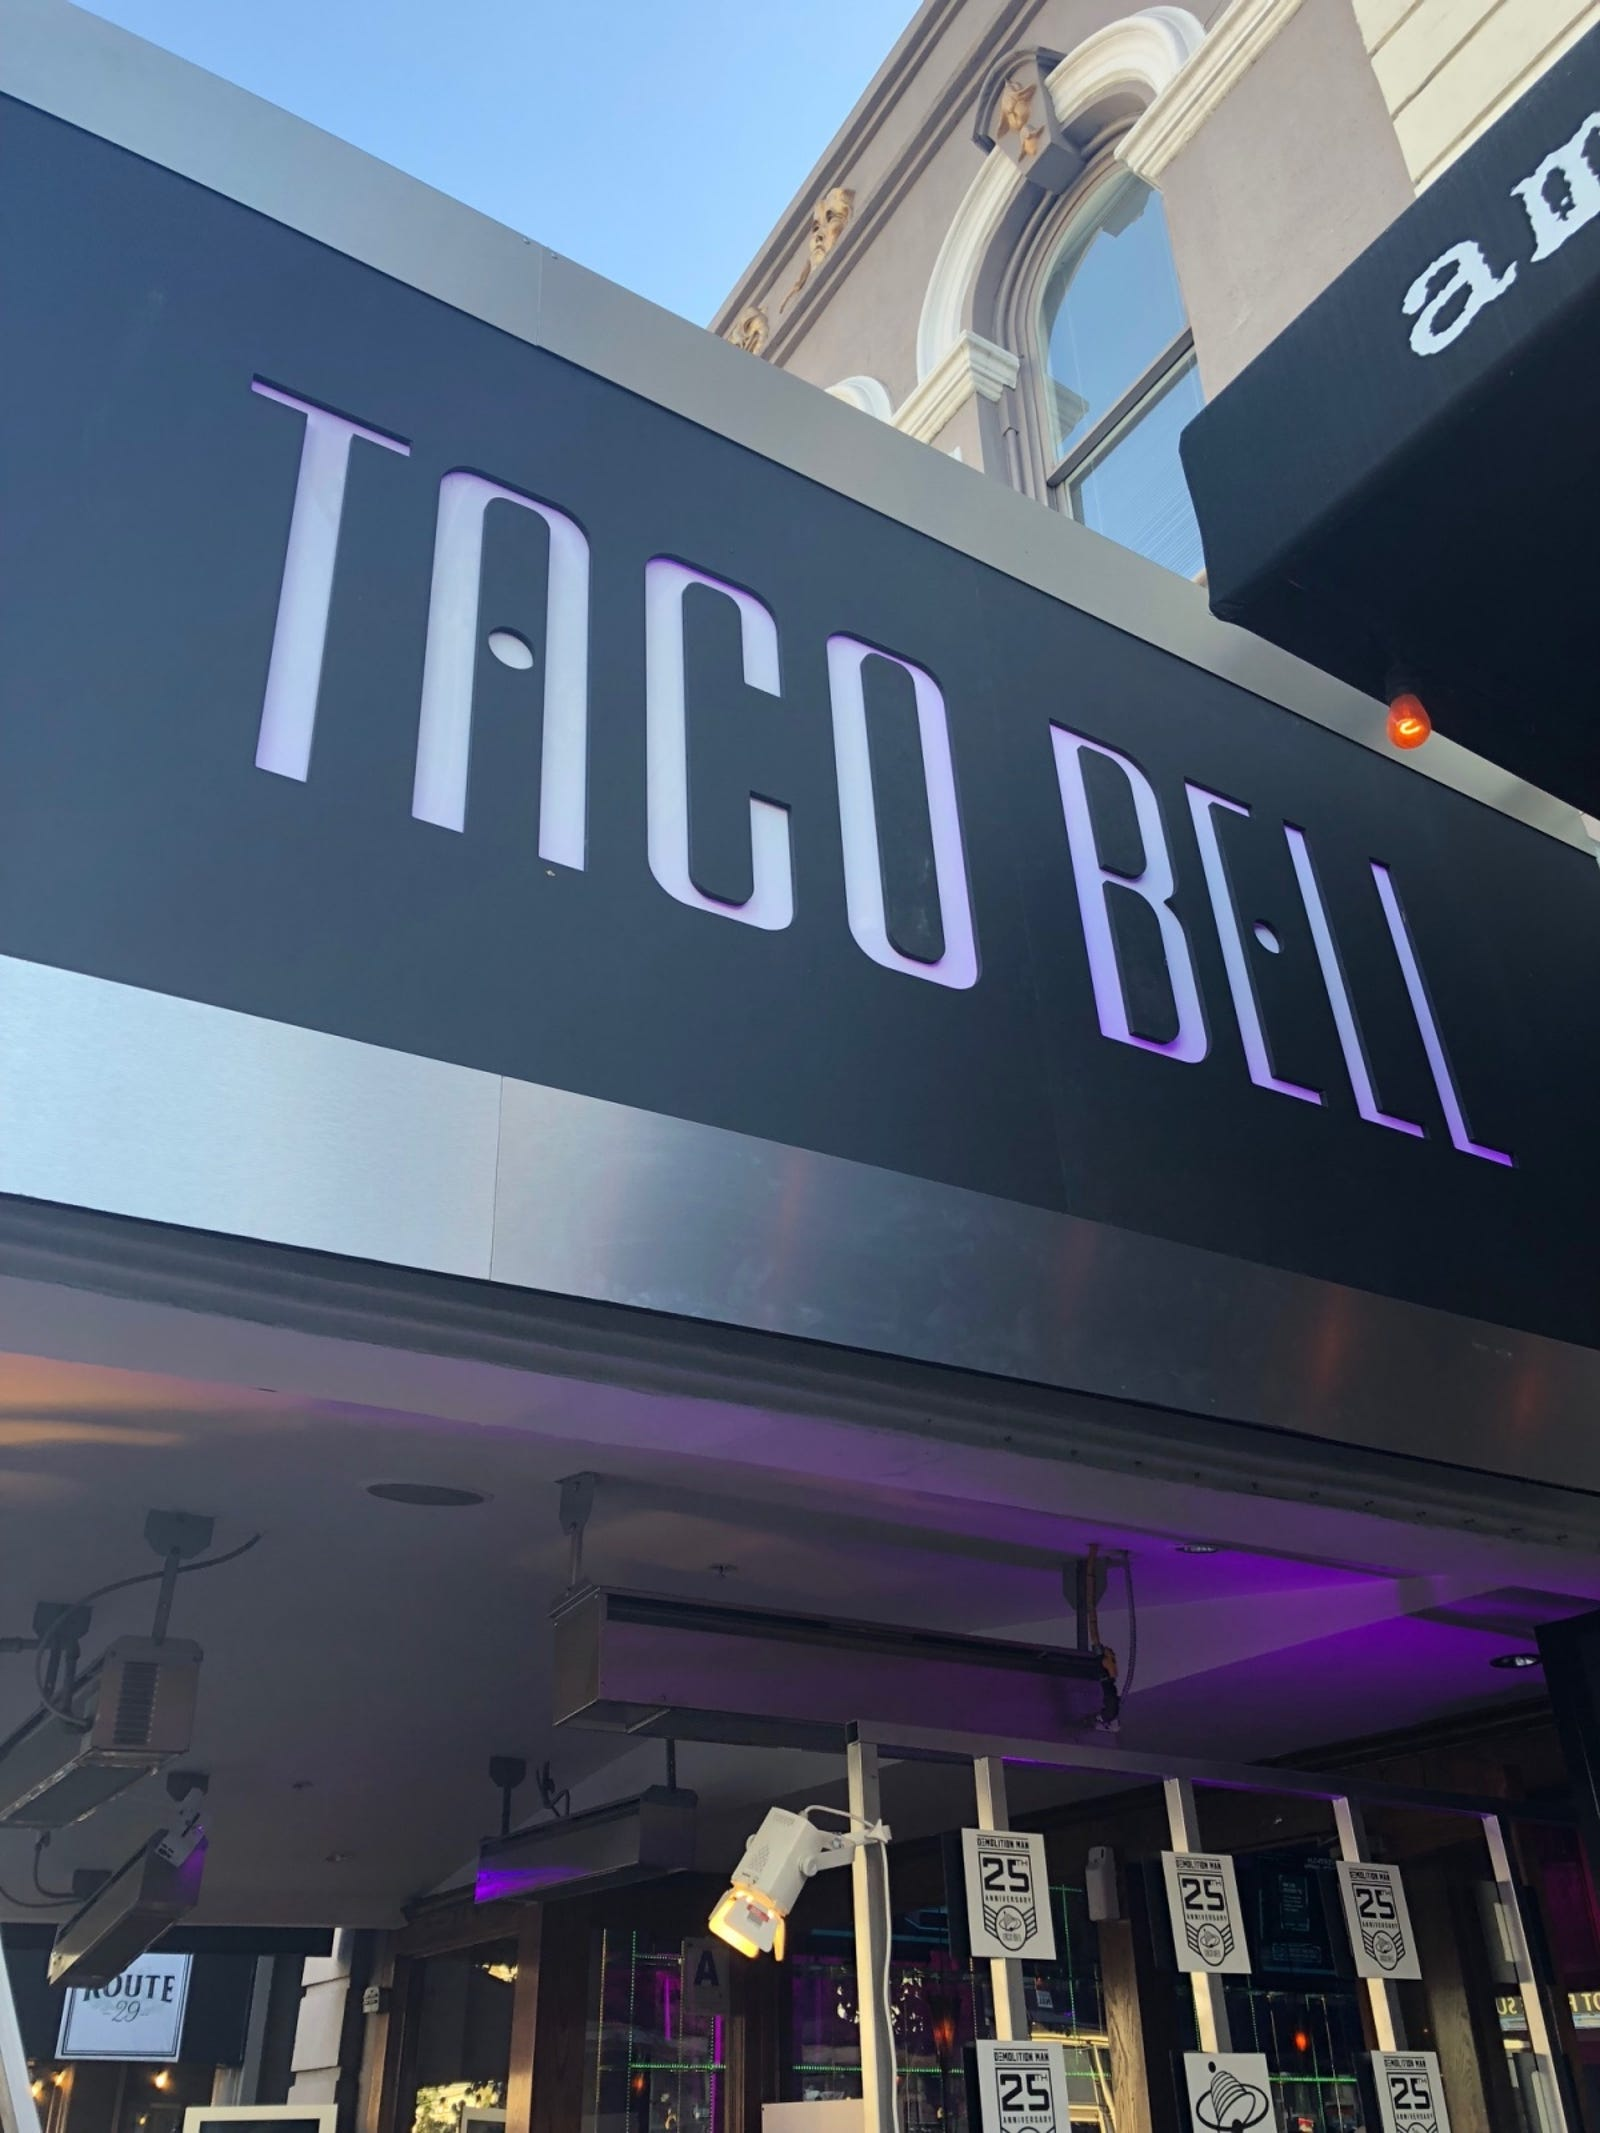 The entrance to the Taco Bell of the future looks, well, futuristic.